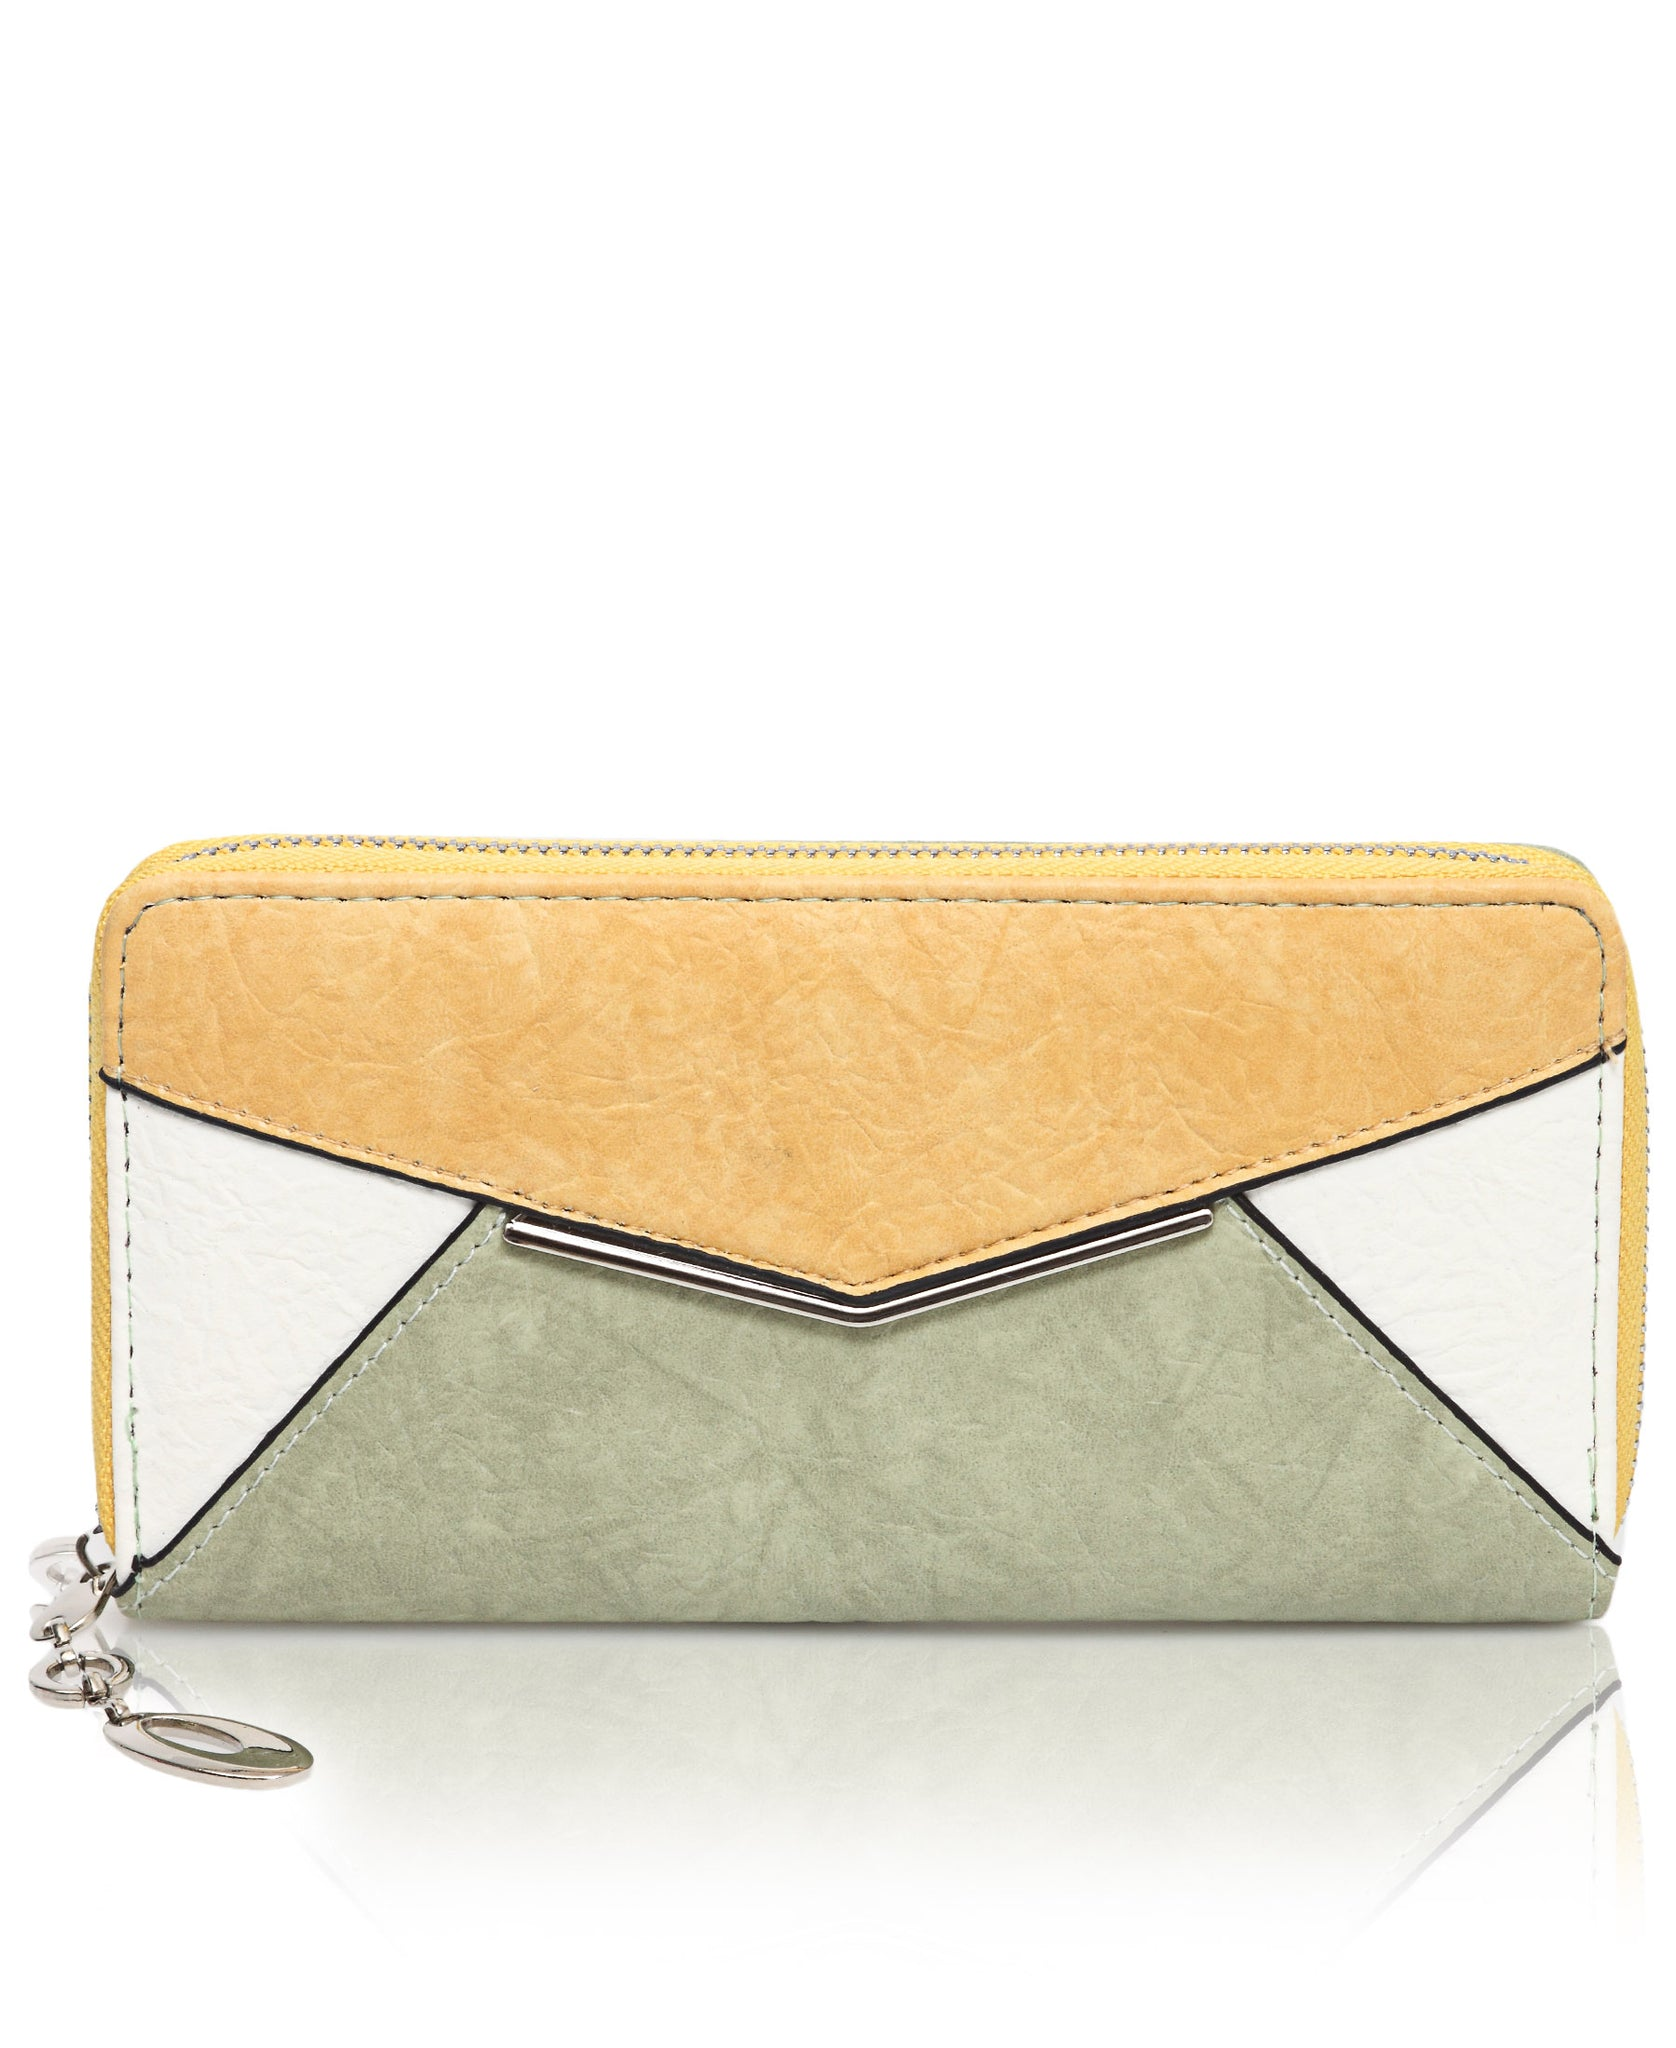 Zip Around Wallet - Mint